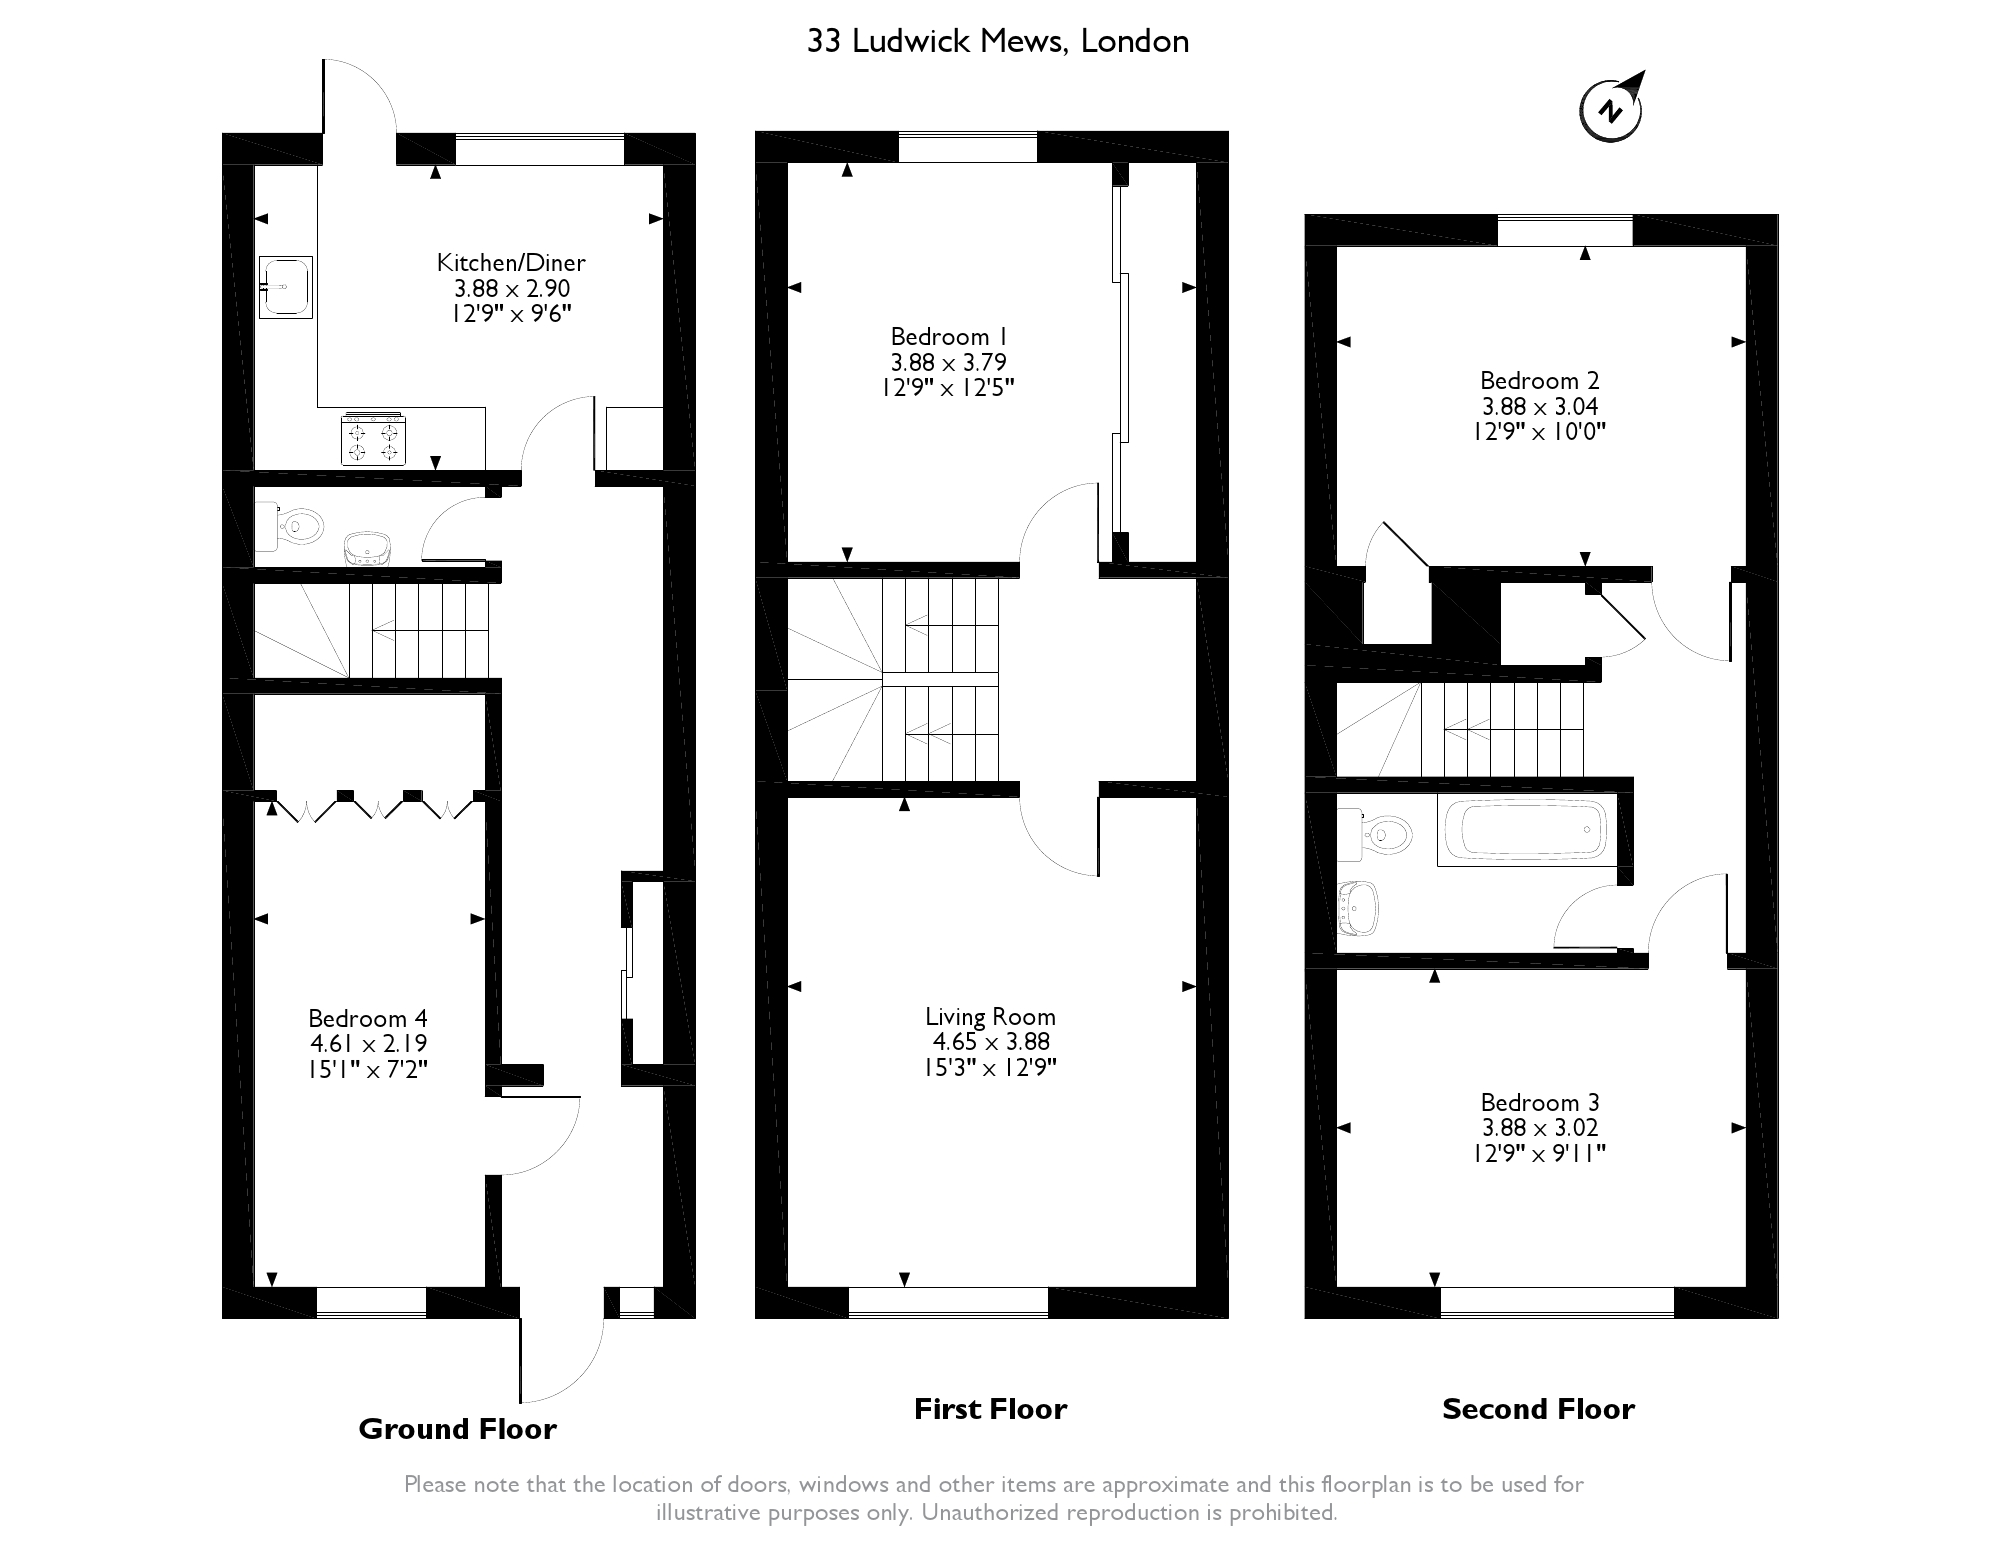 Terraced house for sale in ludwick mews london from emoov for 15 bruyeres mews floor plans